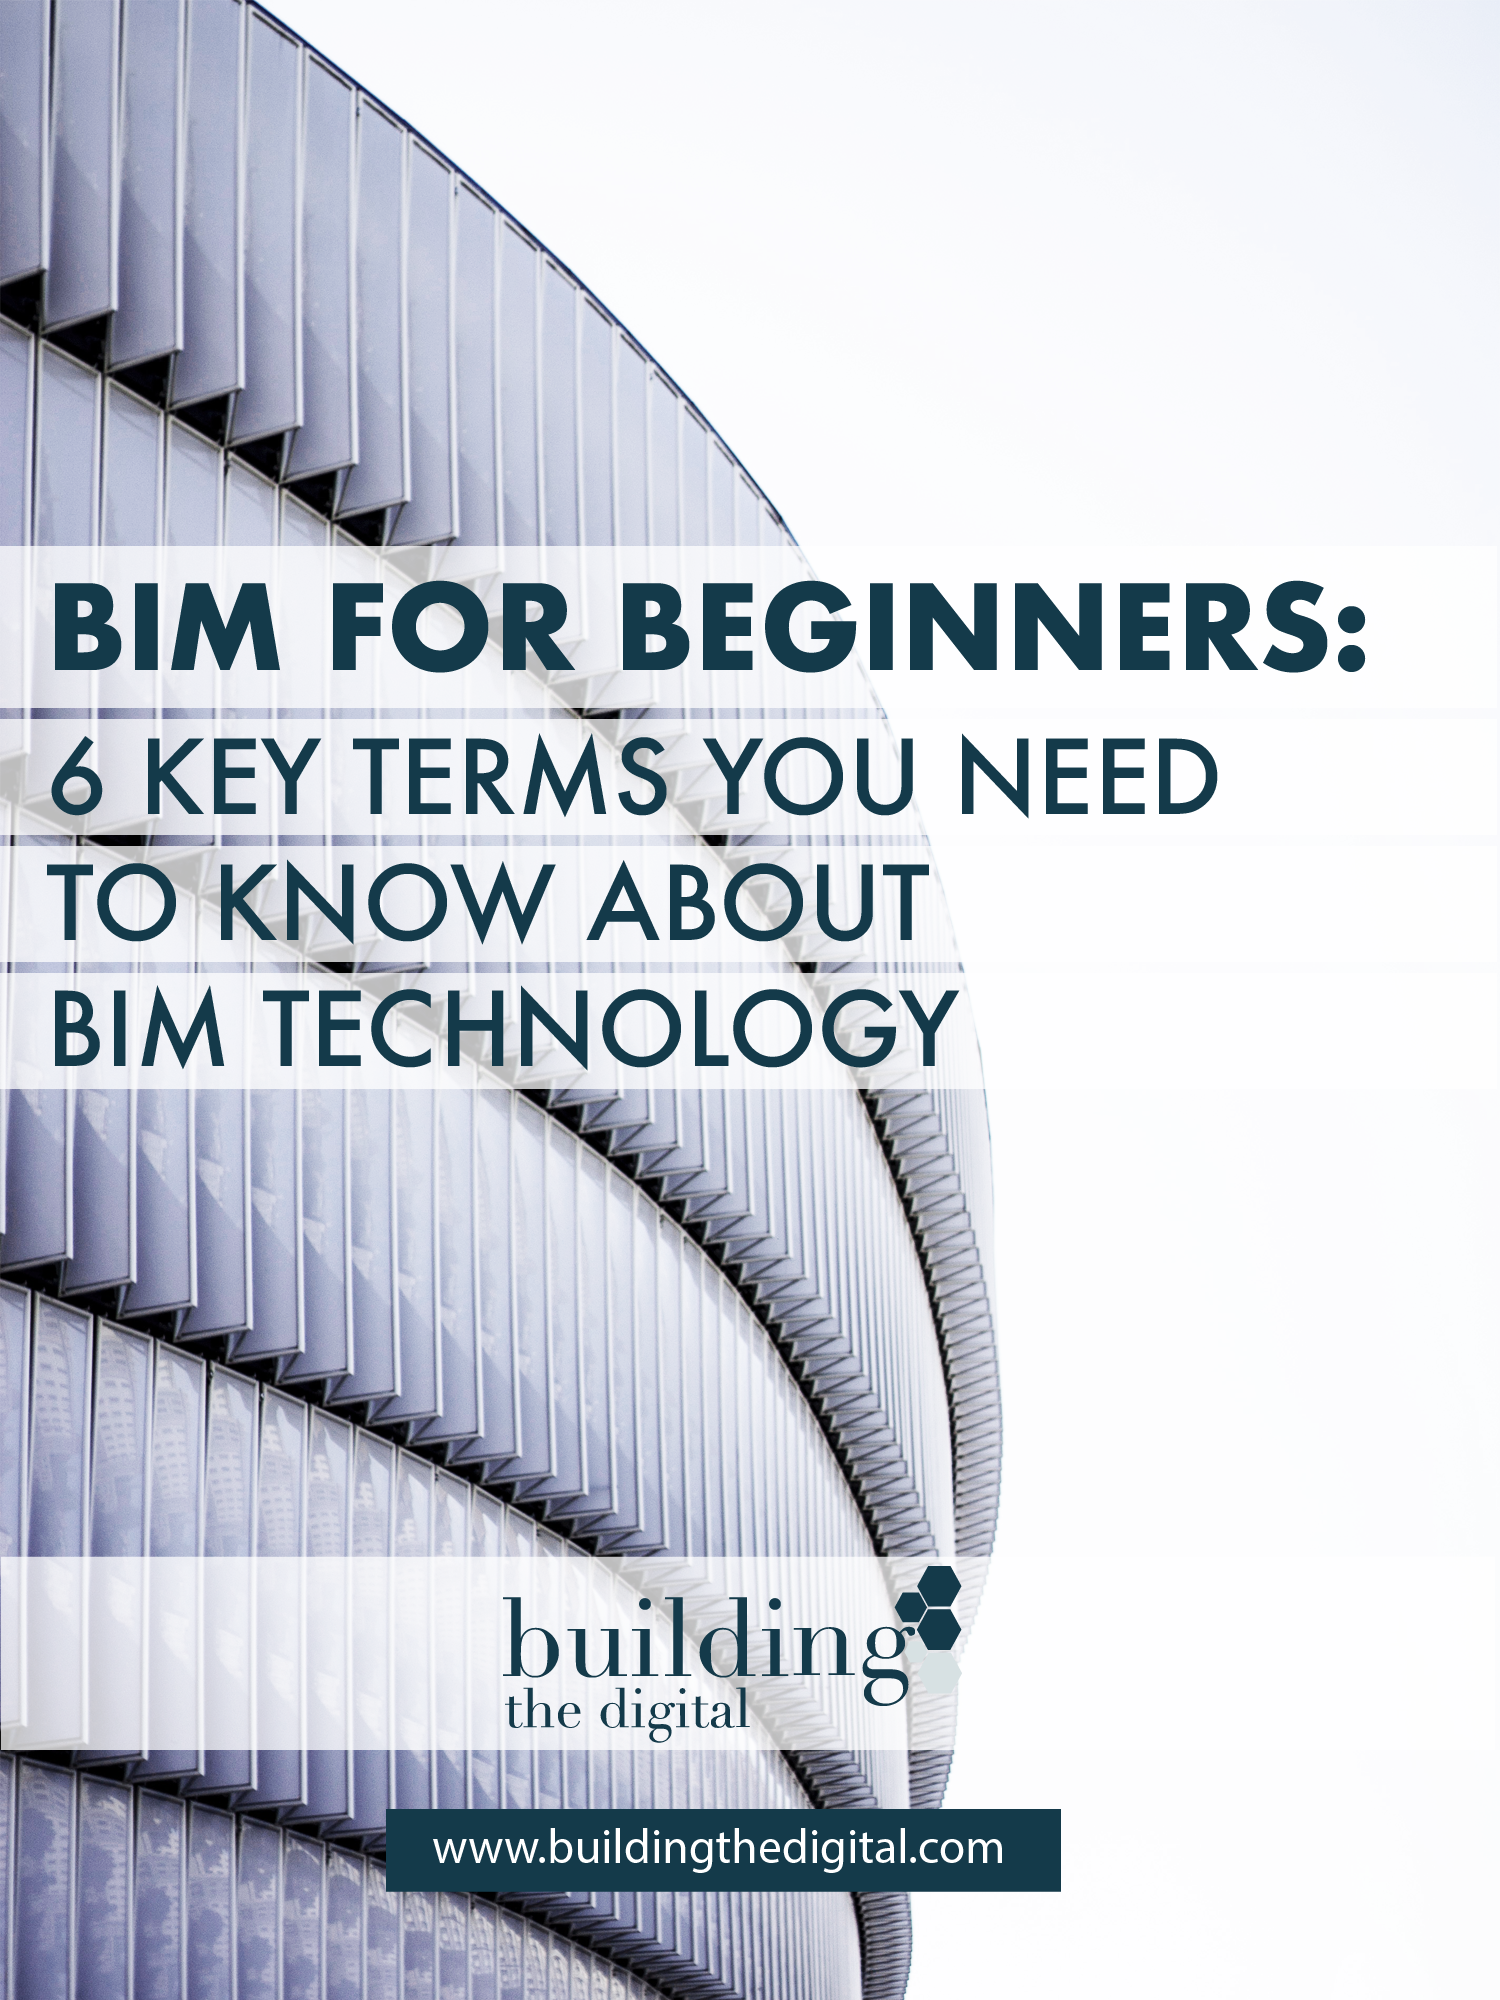 BIM for beginners, the 6 Key terms you need to know when you are getting started with building information modeling. https://www.buildingthedigital.com/blog/bim-beginners